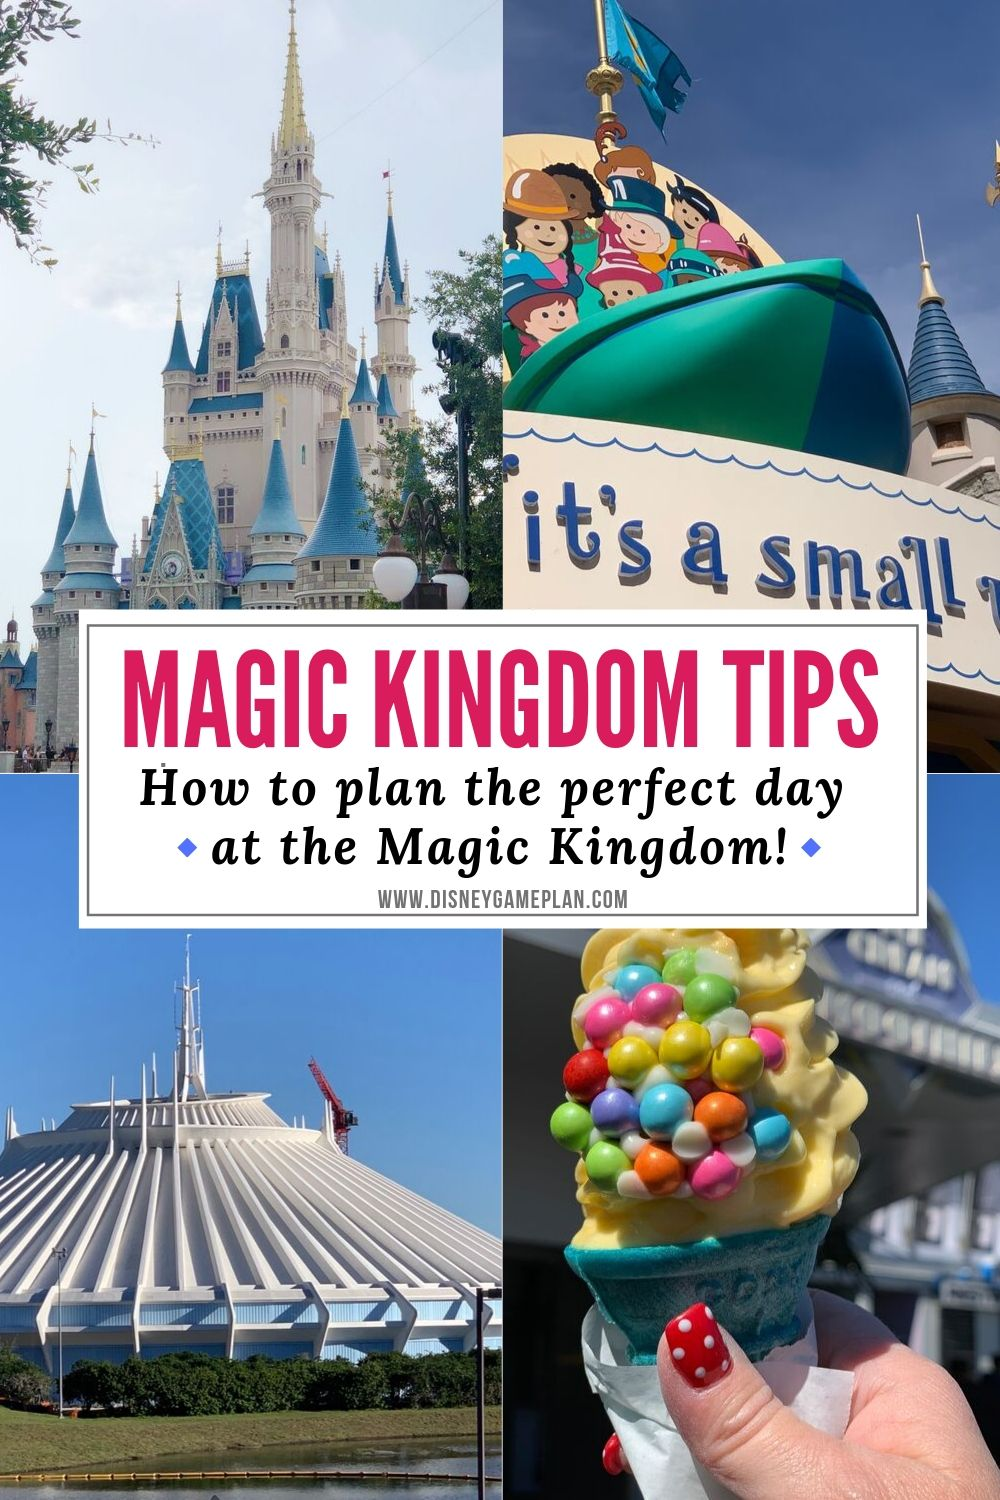 Every day should be a Magic Kingdom Day. Here are helpful Disney Planning tips to make the most of your day in Walt Disney World Magic Kingdom. These stress-free Magic Kingdom tips will make your Disney World Vacation even more magical. #disneytips #magickingdomtips #disneyhacks